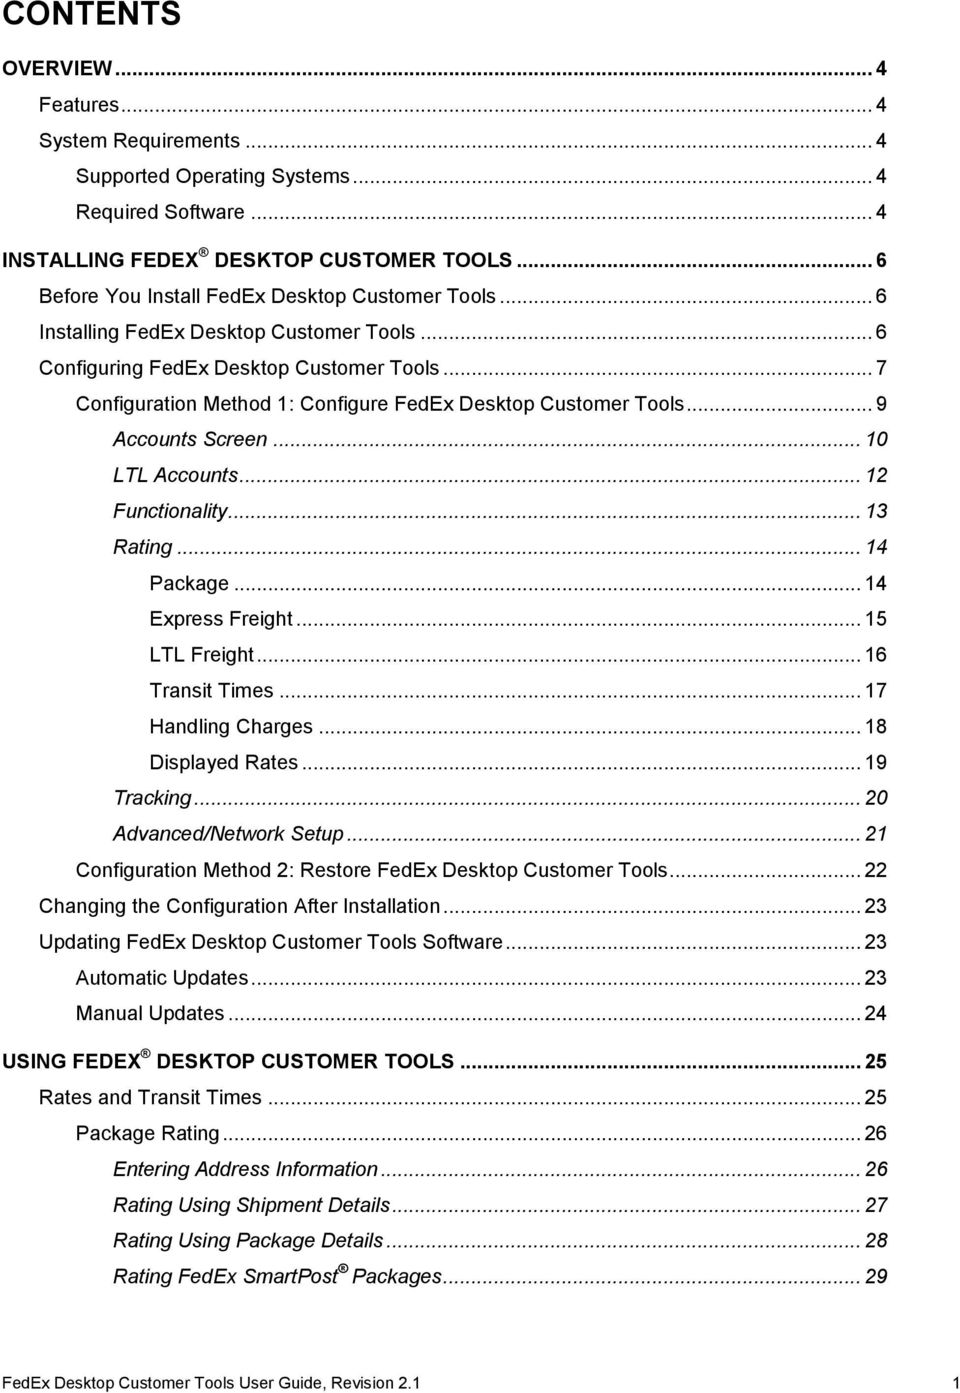 FEDEX DESKTOP CUSTOMER TOOLS USER GUIDE - PDF